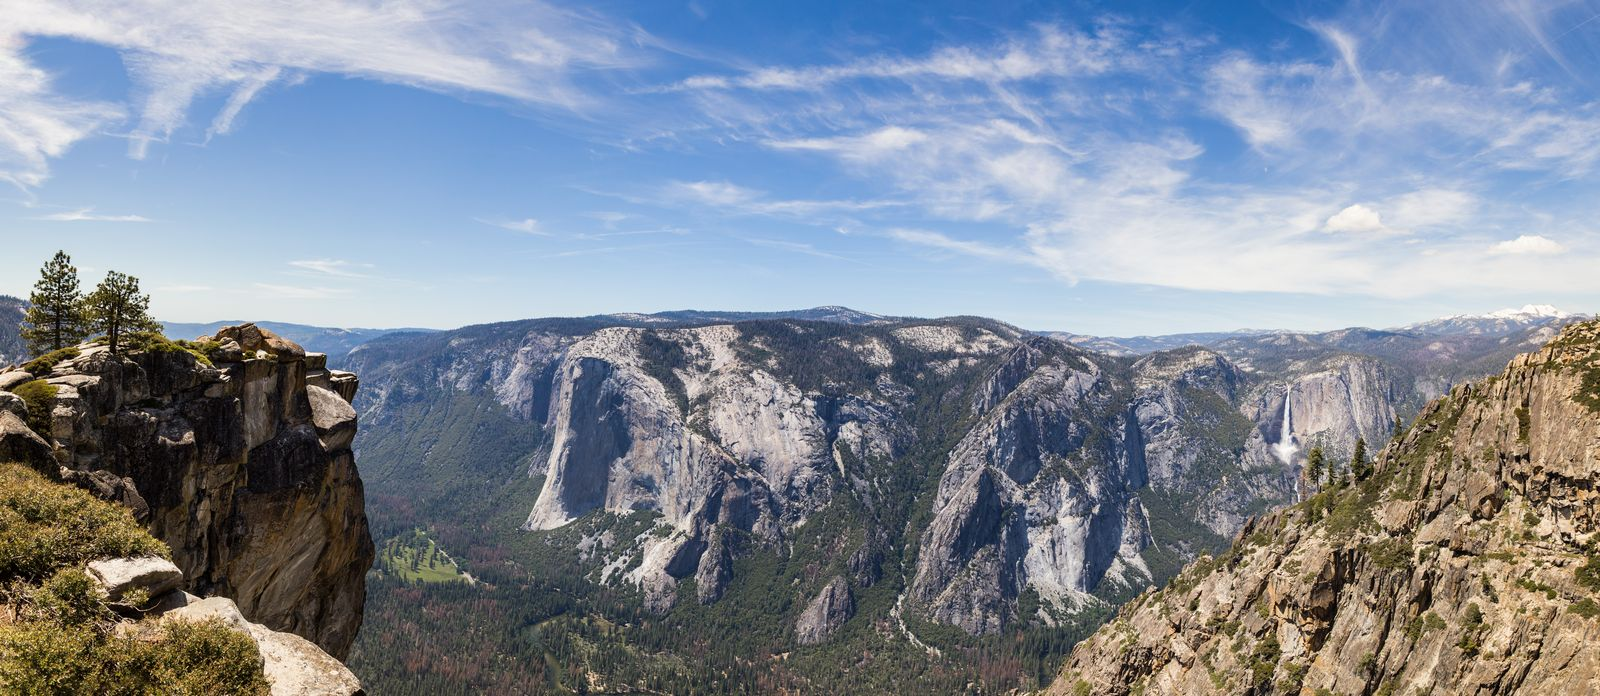 Las vistas desde Taft Point